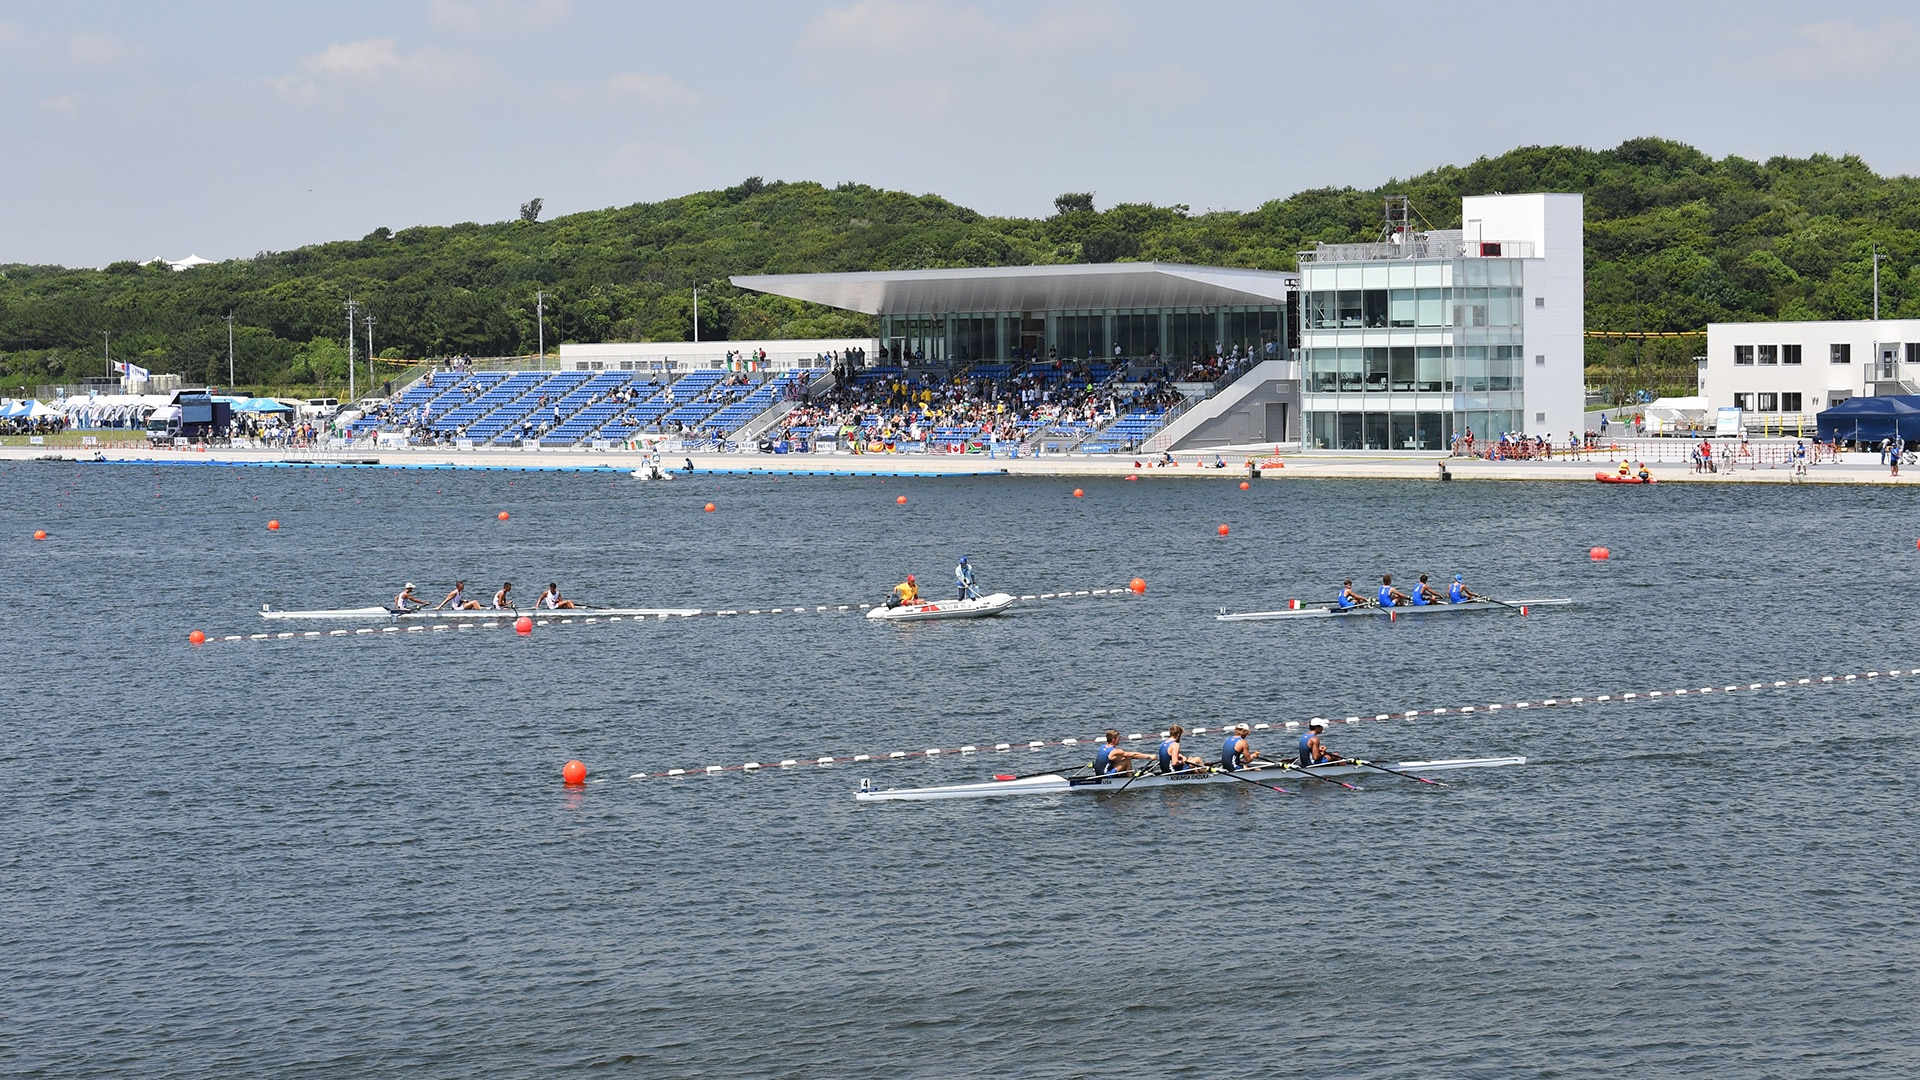 General view of the Sea Forest Waterway at the Tokyo 2020 rowing test event in 2019